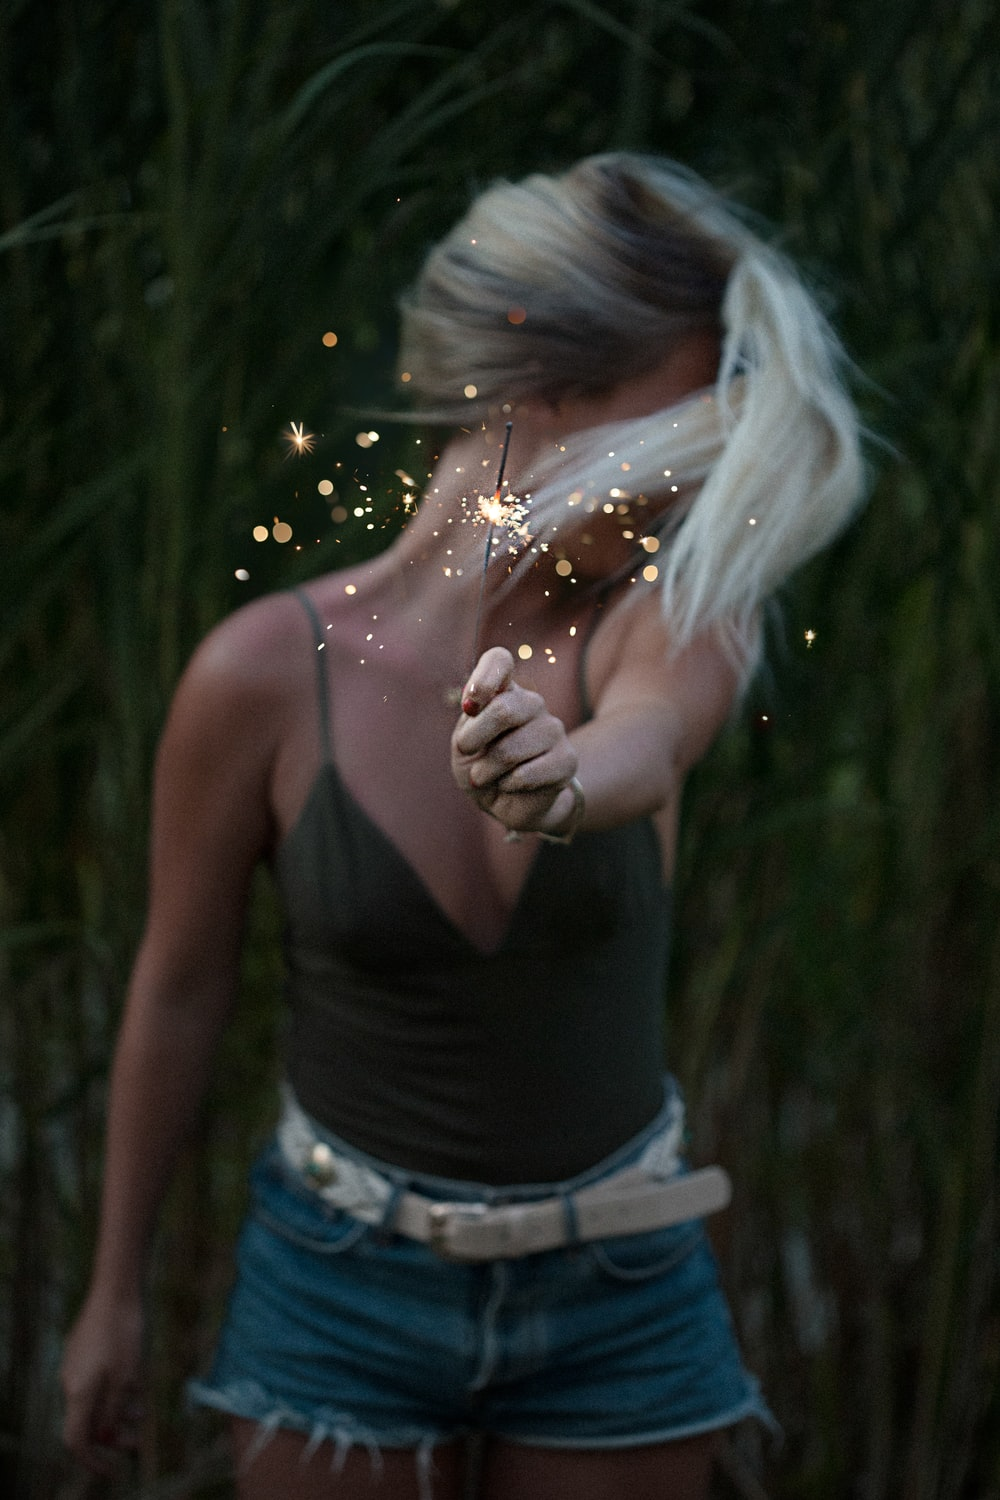 selective focus photo of woman holding sparkler while looking away